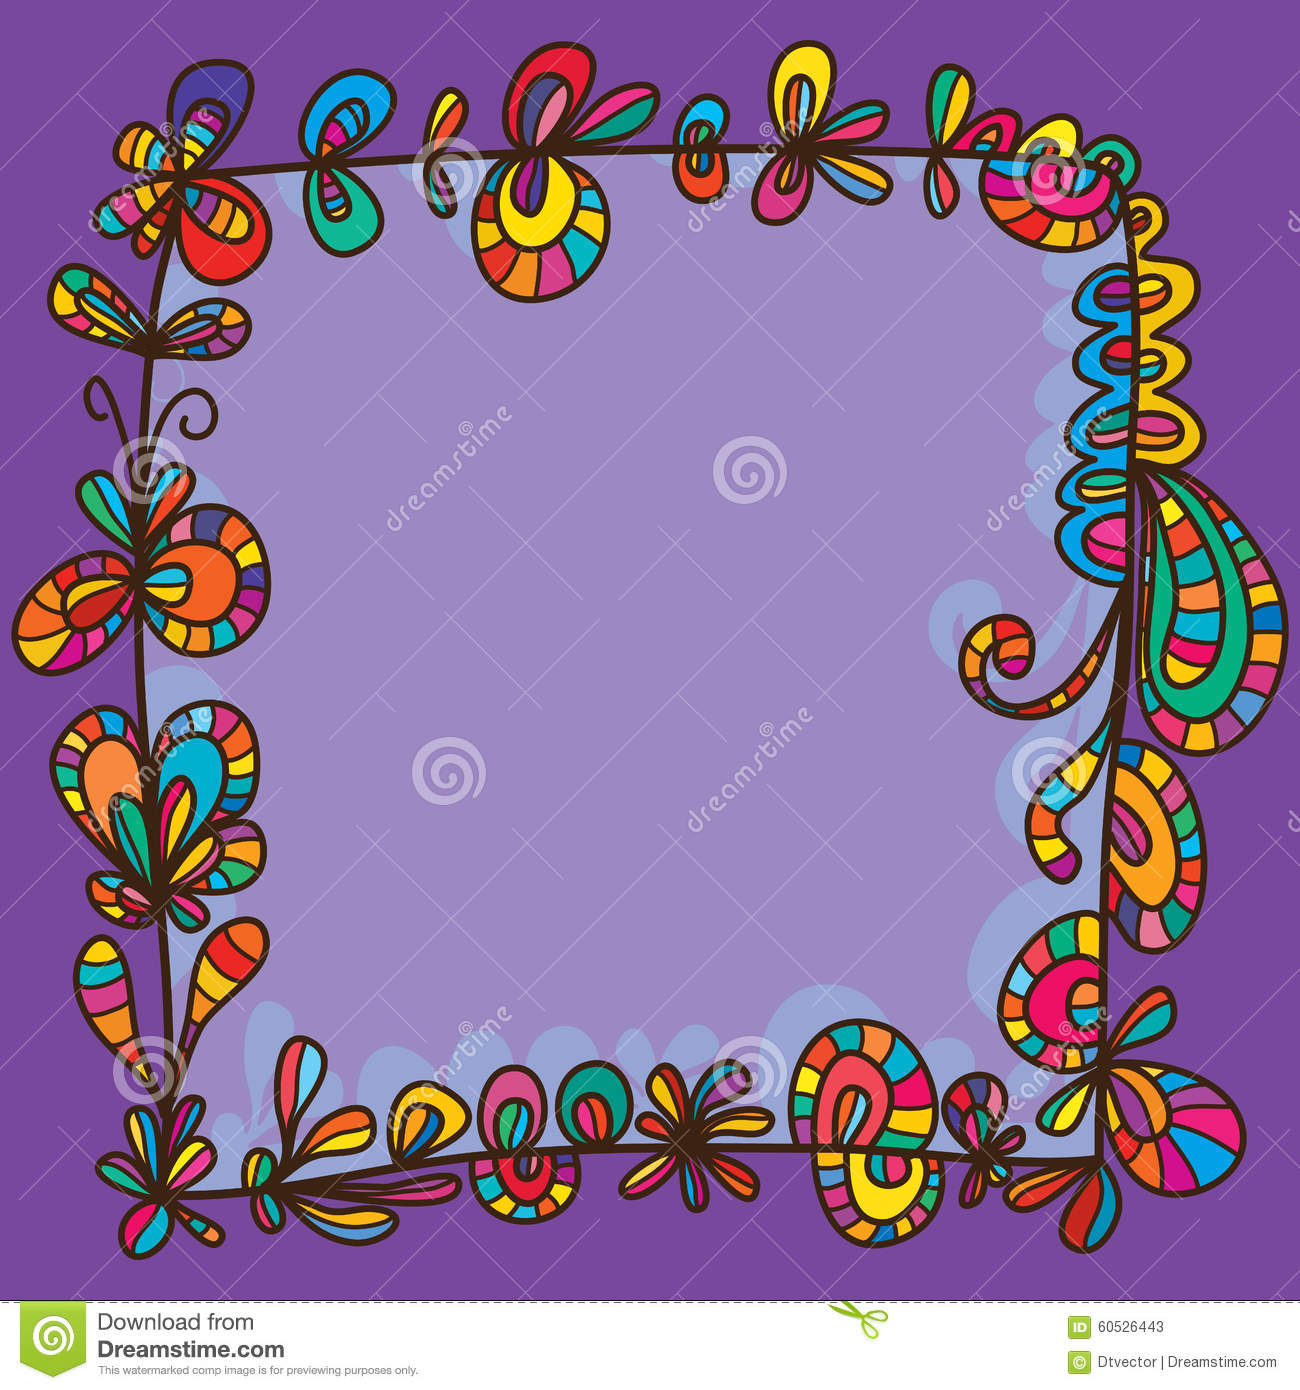 ... drawing frame square style template graphic purple background design